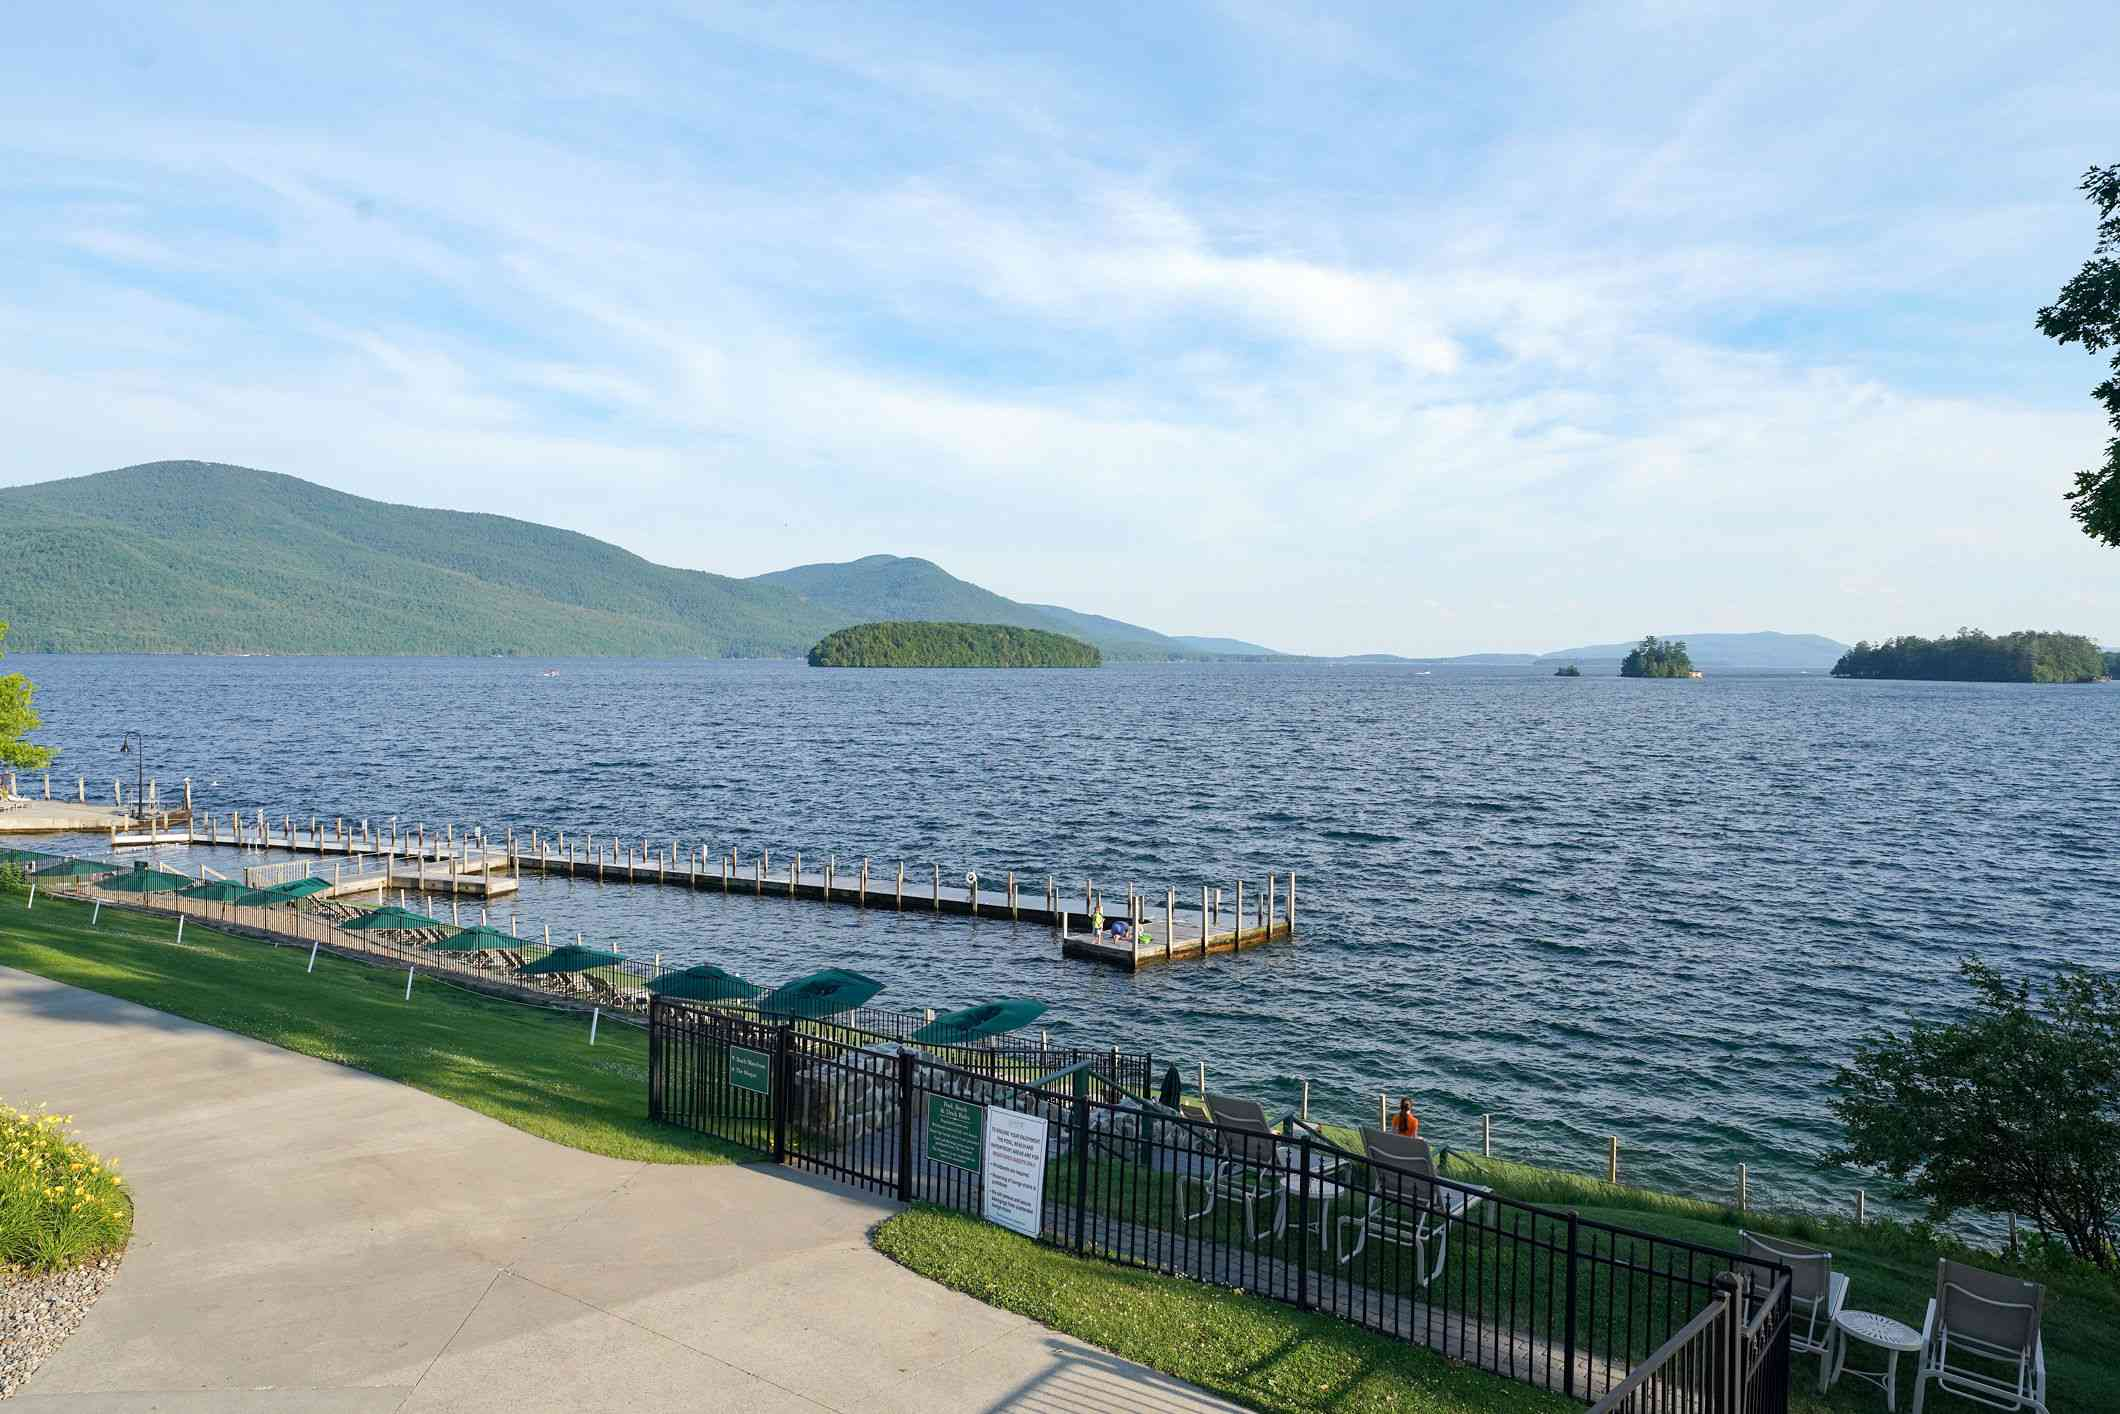 View of the lake from the Sagamore Hotel